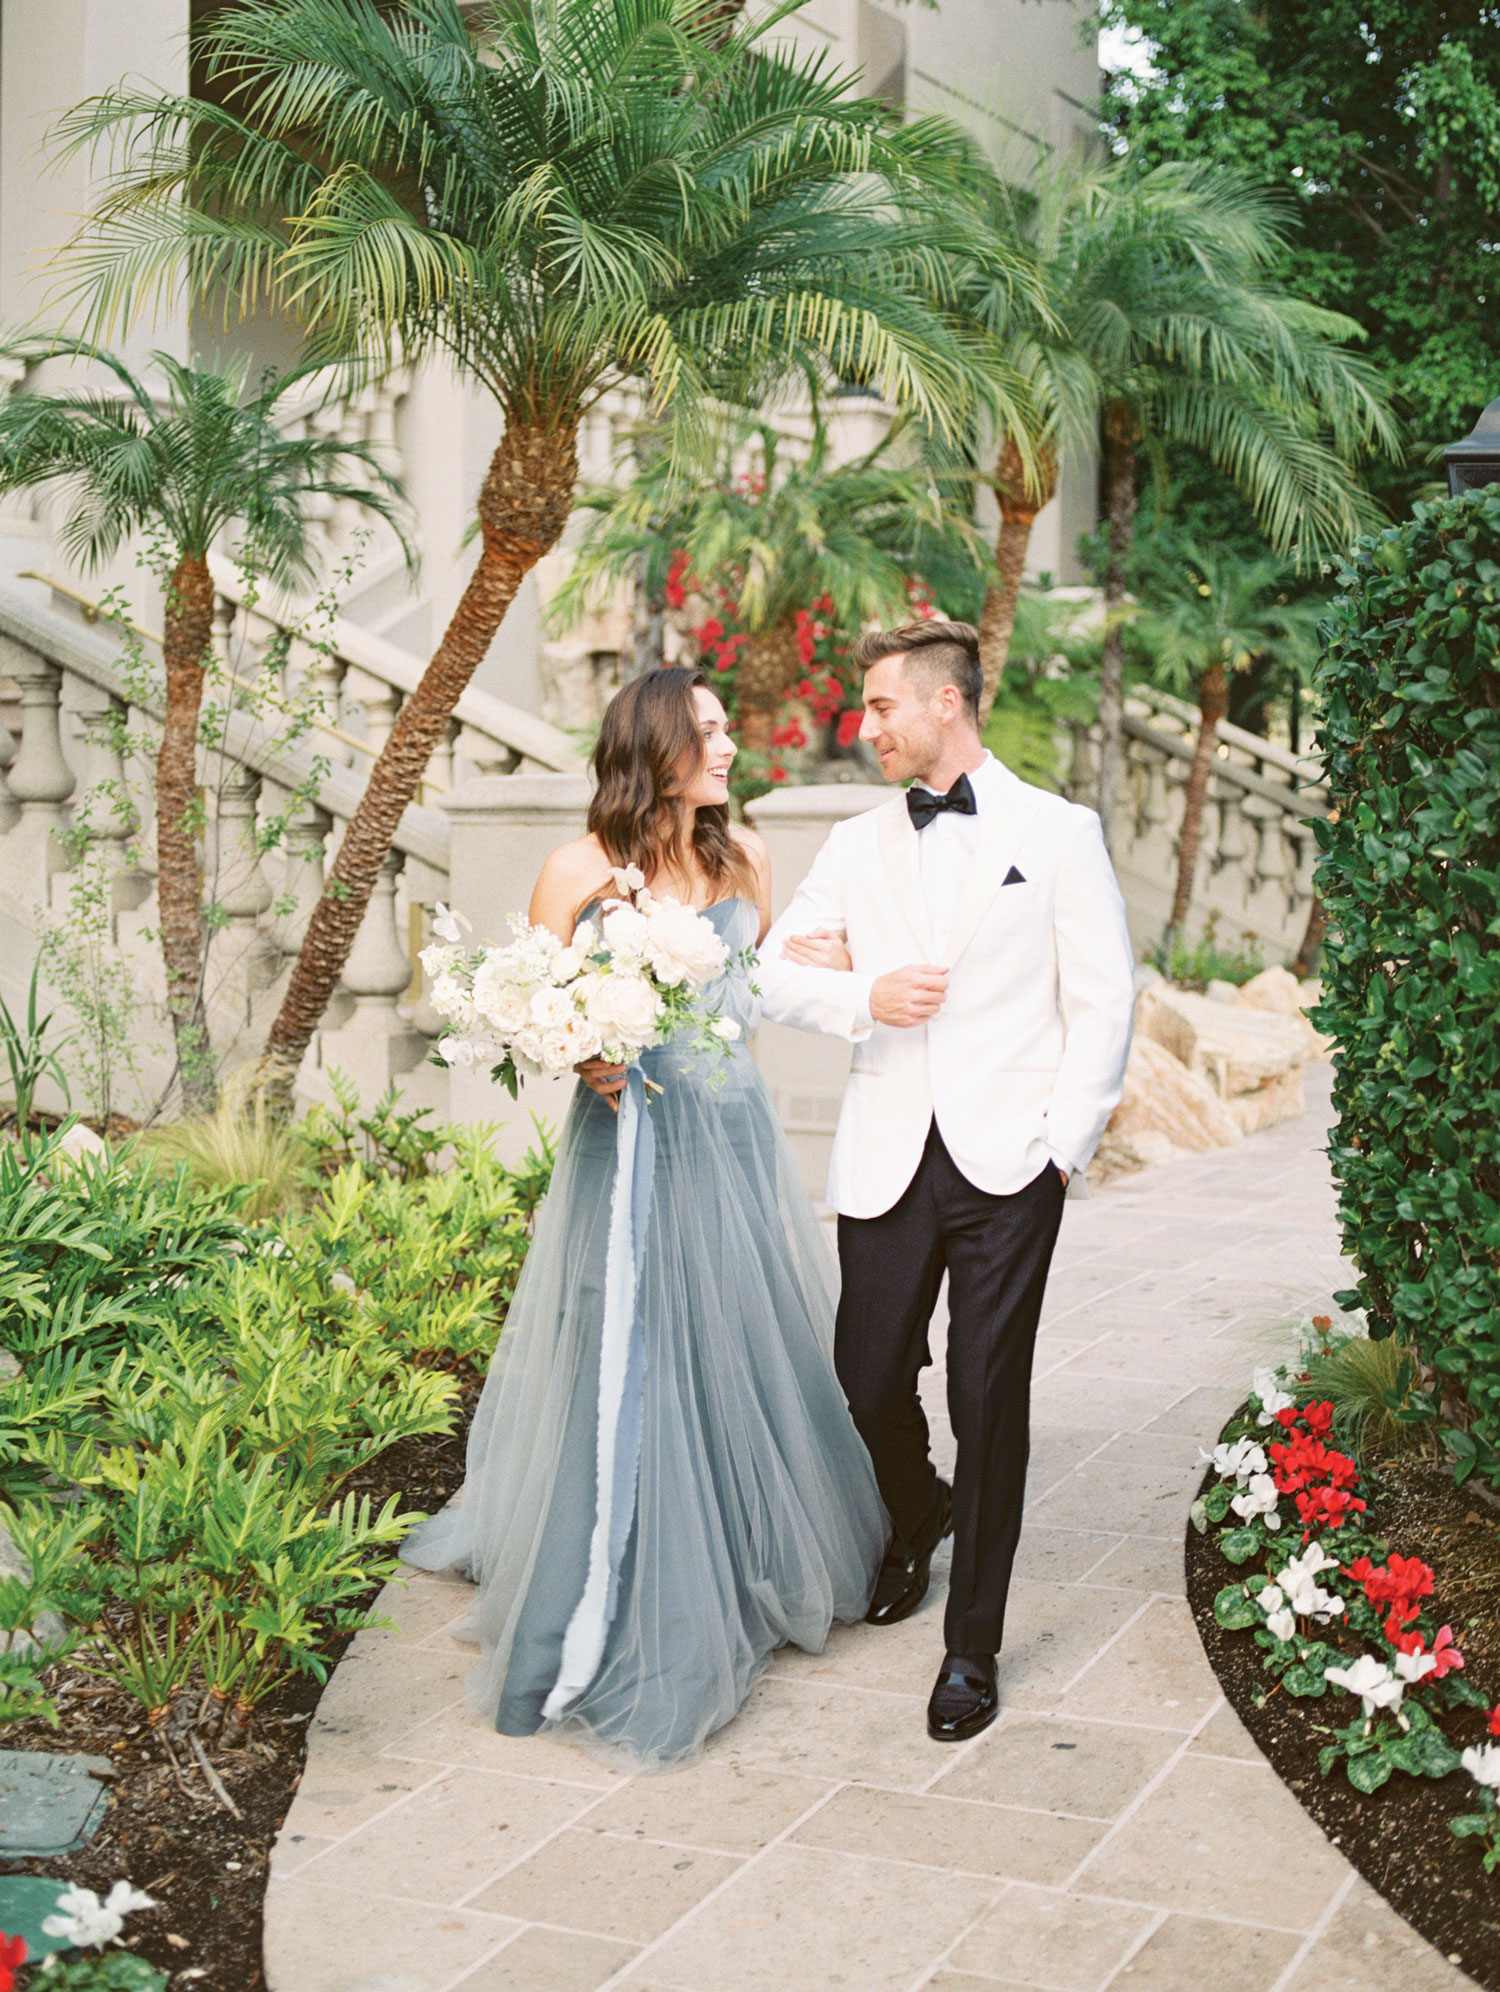 wedding trends and ideas bridal gowns wow factor personality